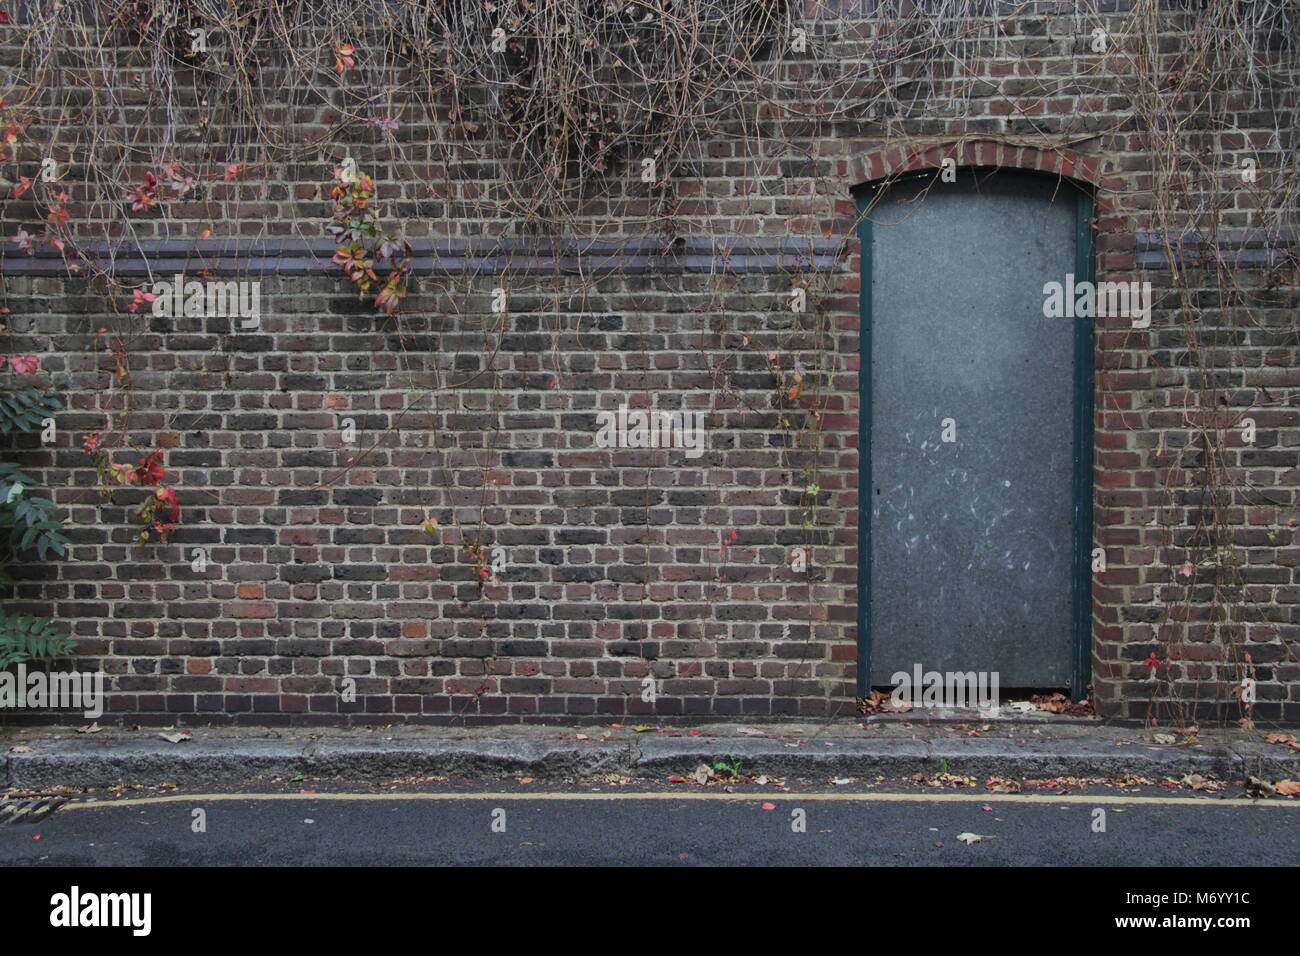 Closed Metal Door on a brickwork brick wall in west London - Stock Image